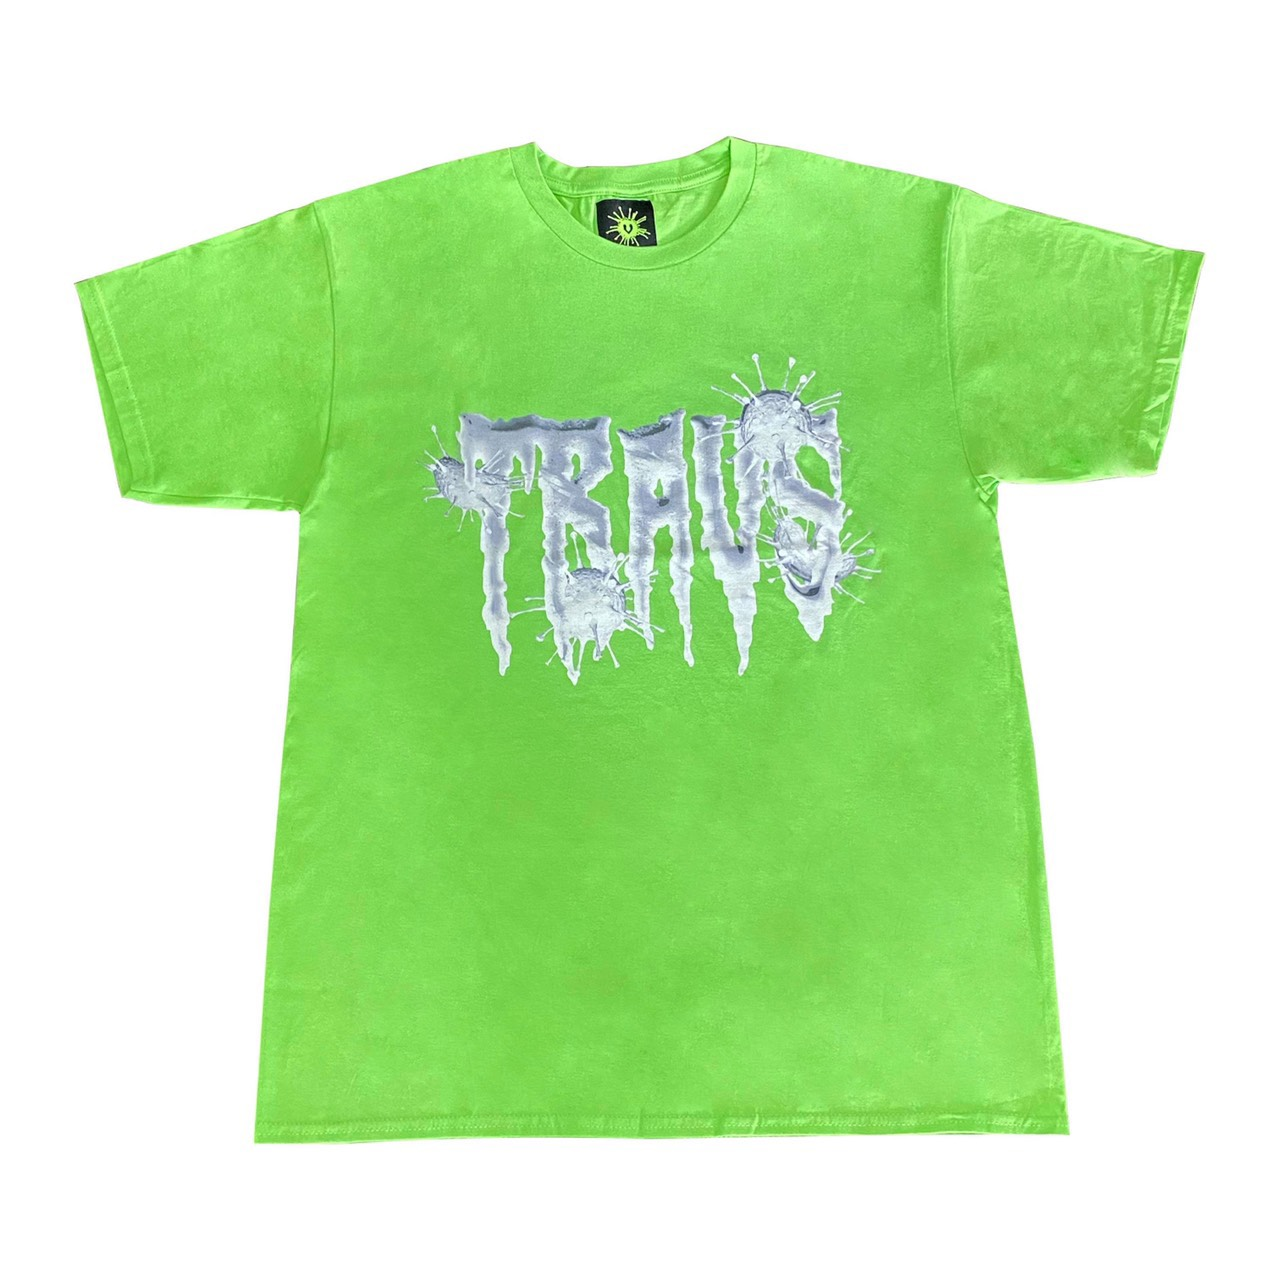 TRAVS x VIRUSWORLD REDNIGHT VIRUS TEE [GRN]